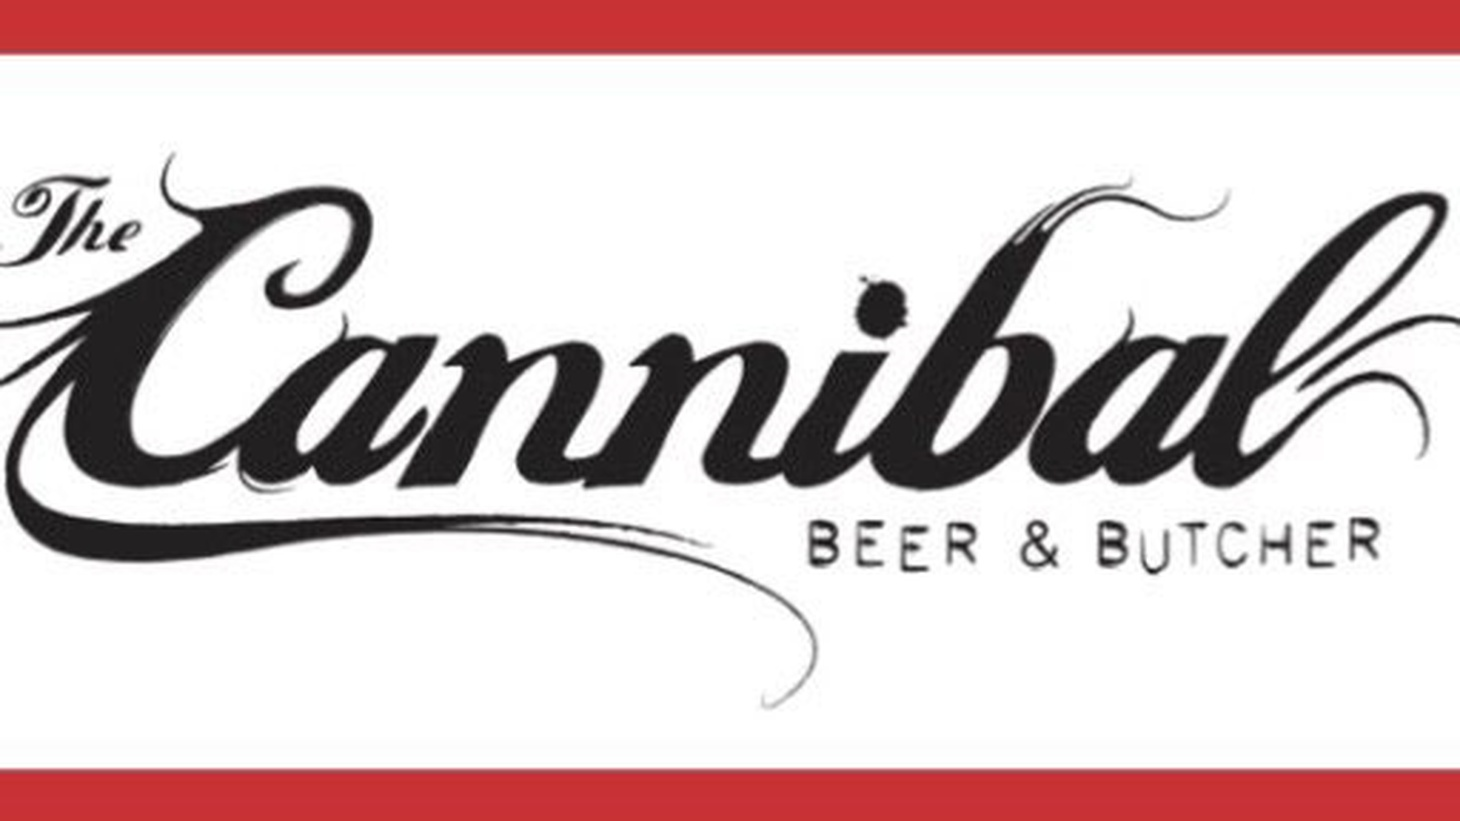 RememberThe Cannibal? The restaurant that opened in July with a butcher shop attached to it?